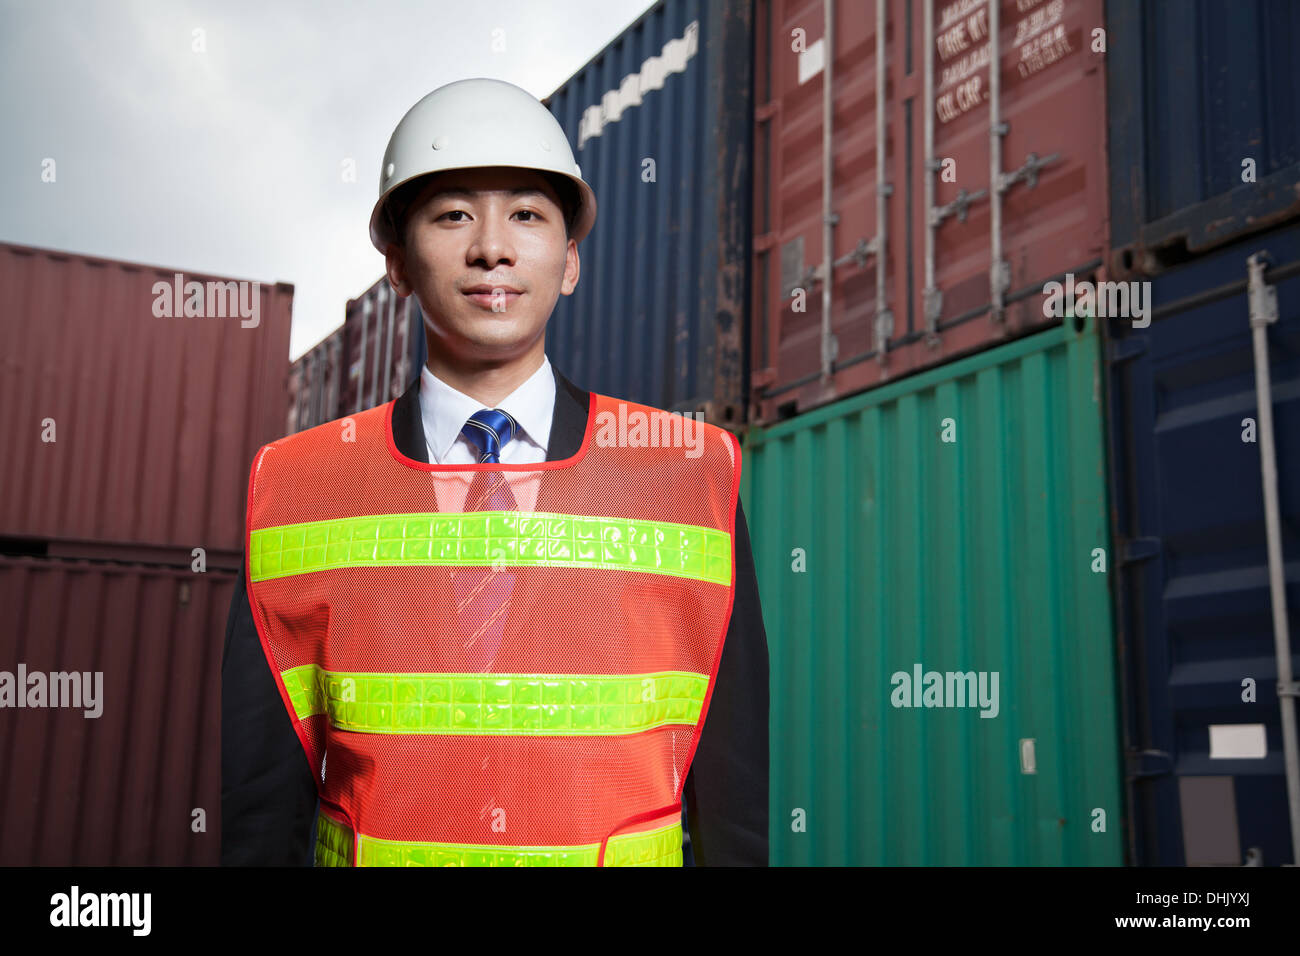 Portrait of proud engineer in protective workwear standing in a shipping yard - Stock Photo